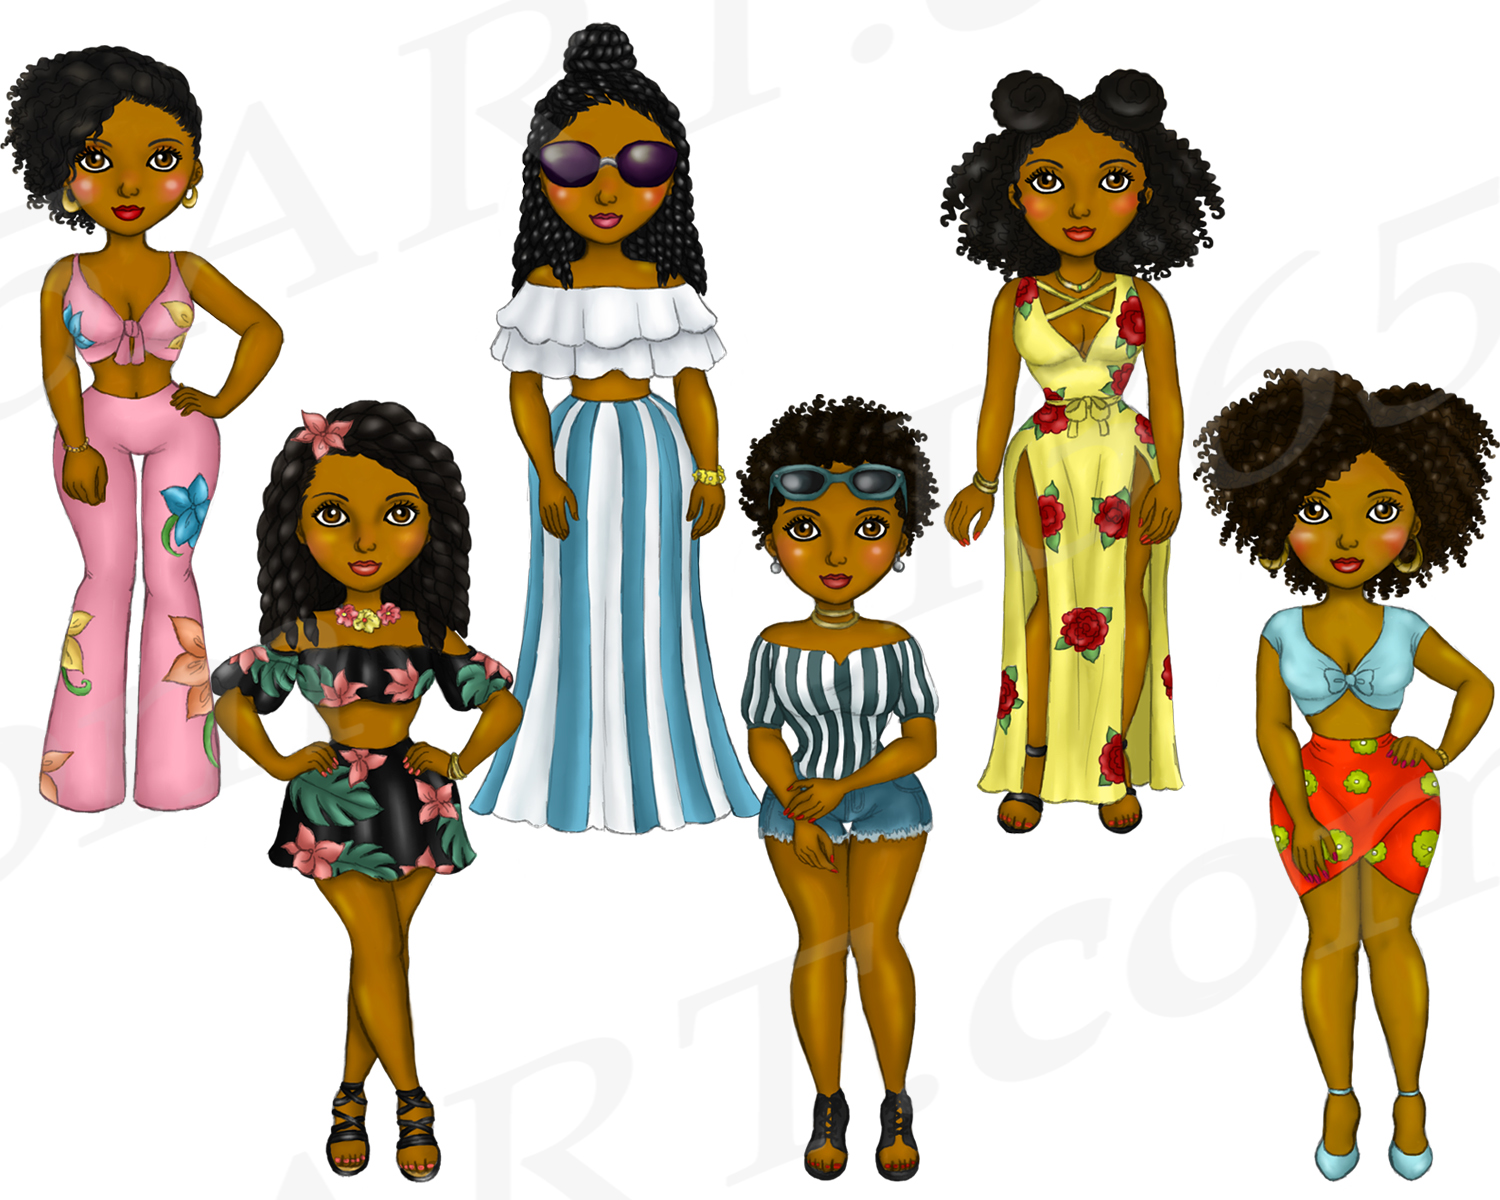 Summer Fashion Girls Planner Clipart, Natural Hair PNG example image 4